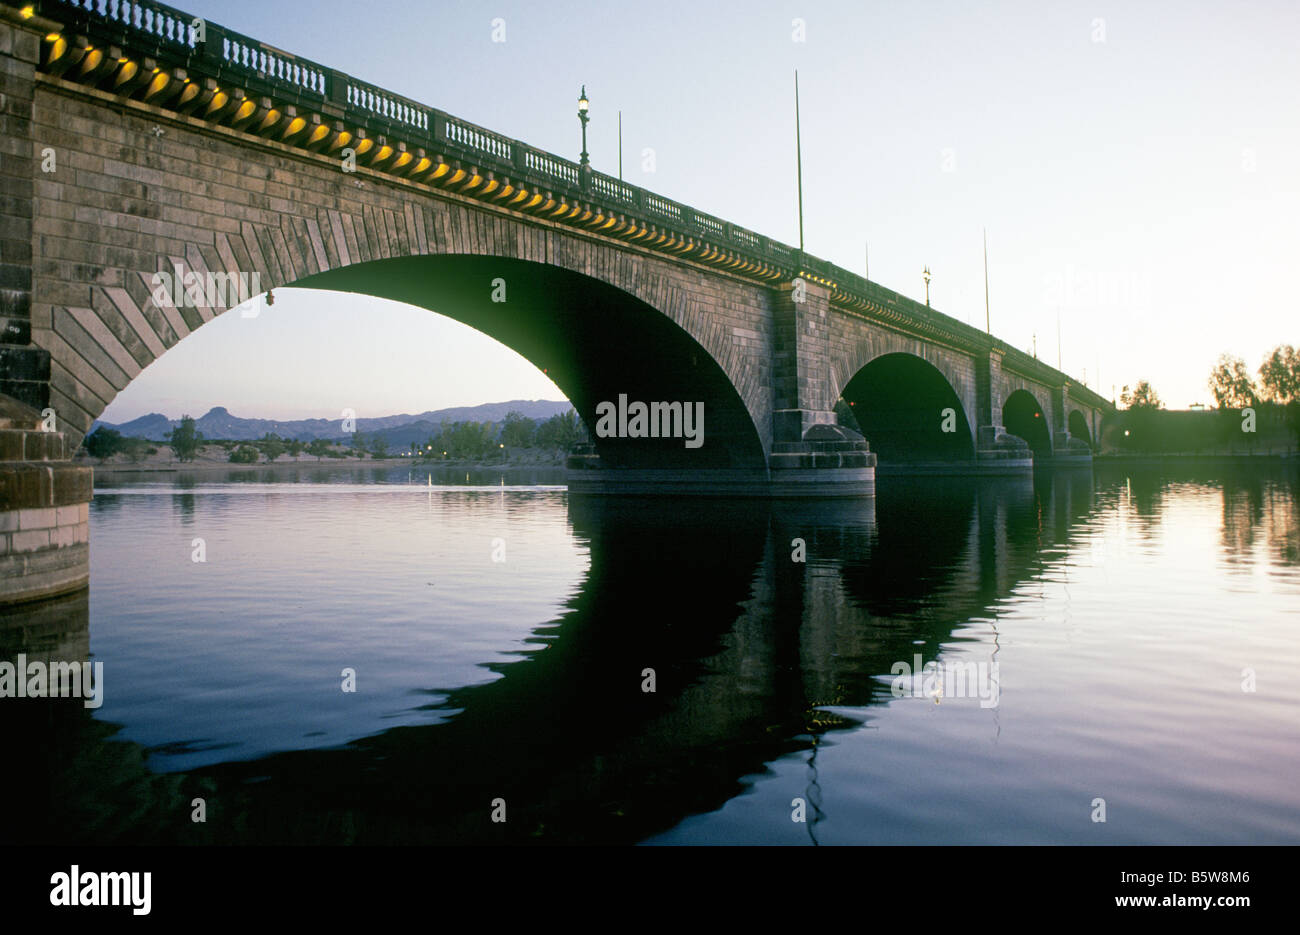 A View Of The Original London Bridge Now Spanning An Arm Of Lake Stock Photo Alamy